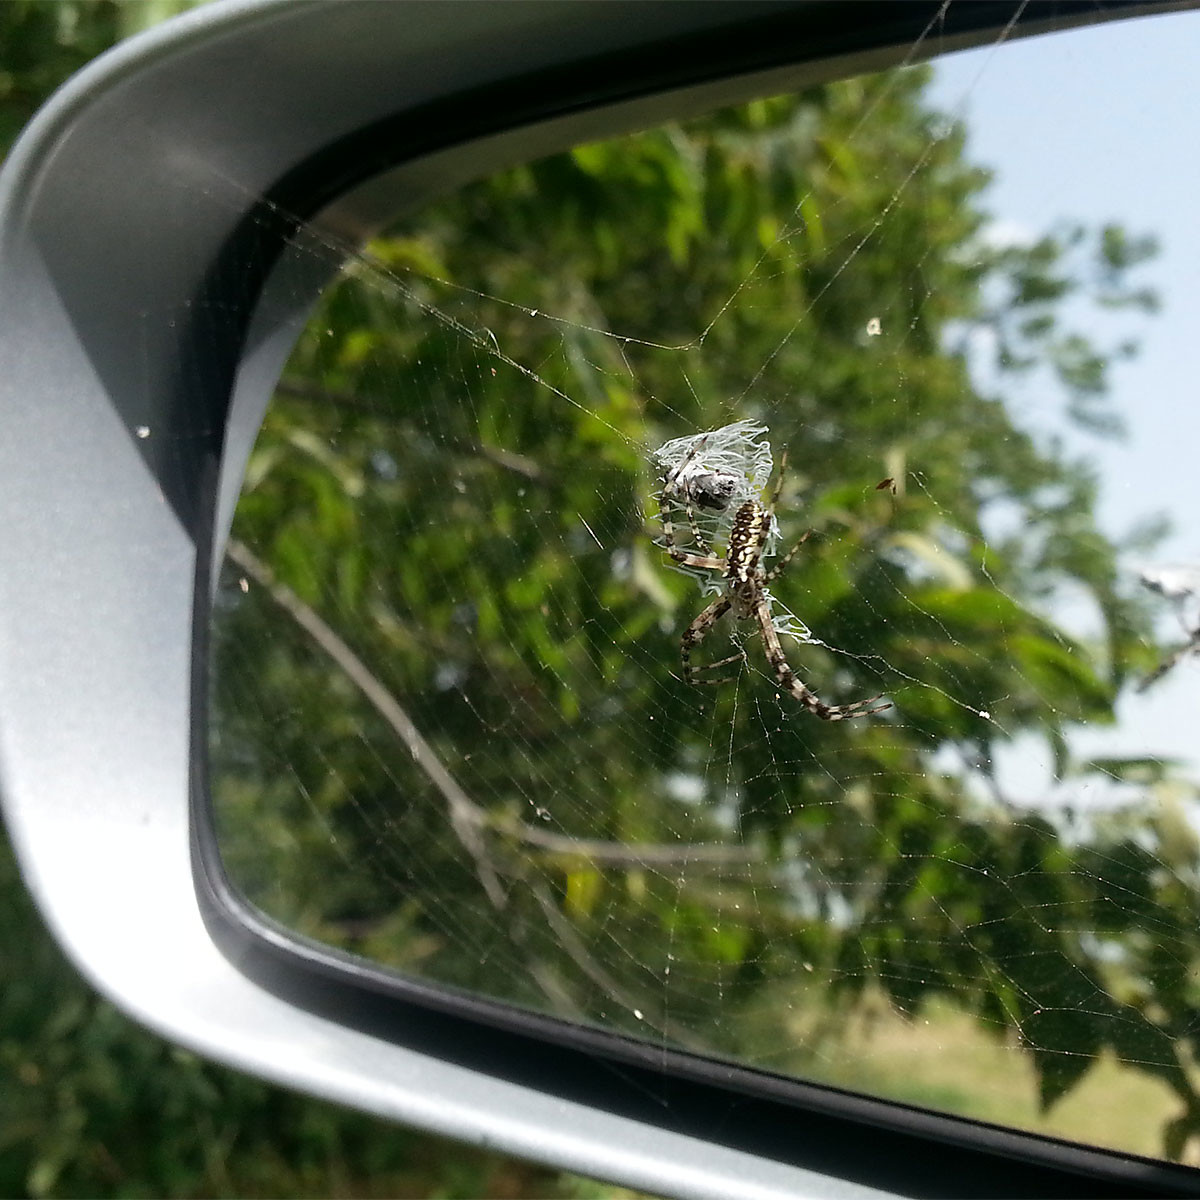 photo of garden spider of rear view mirror